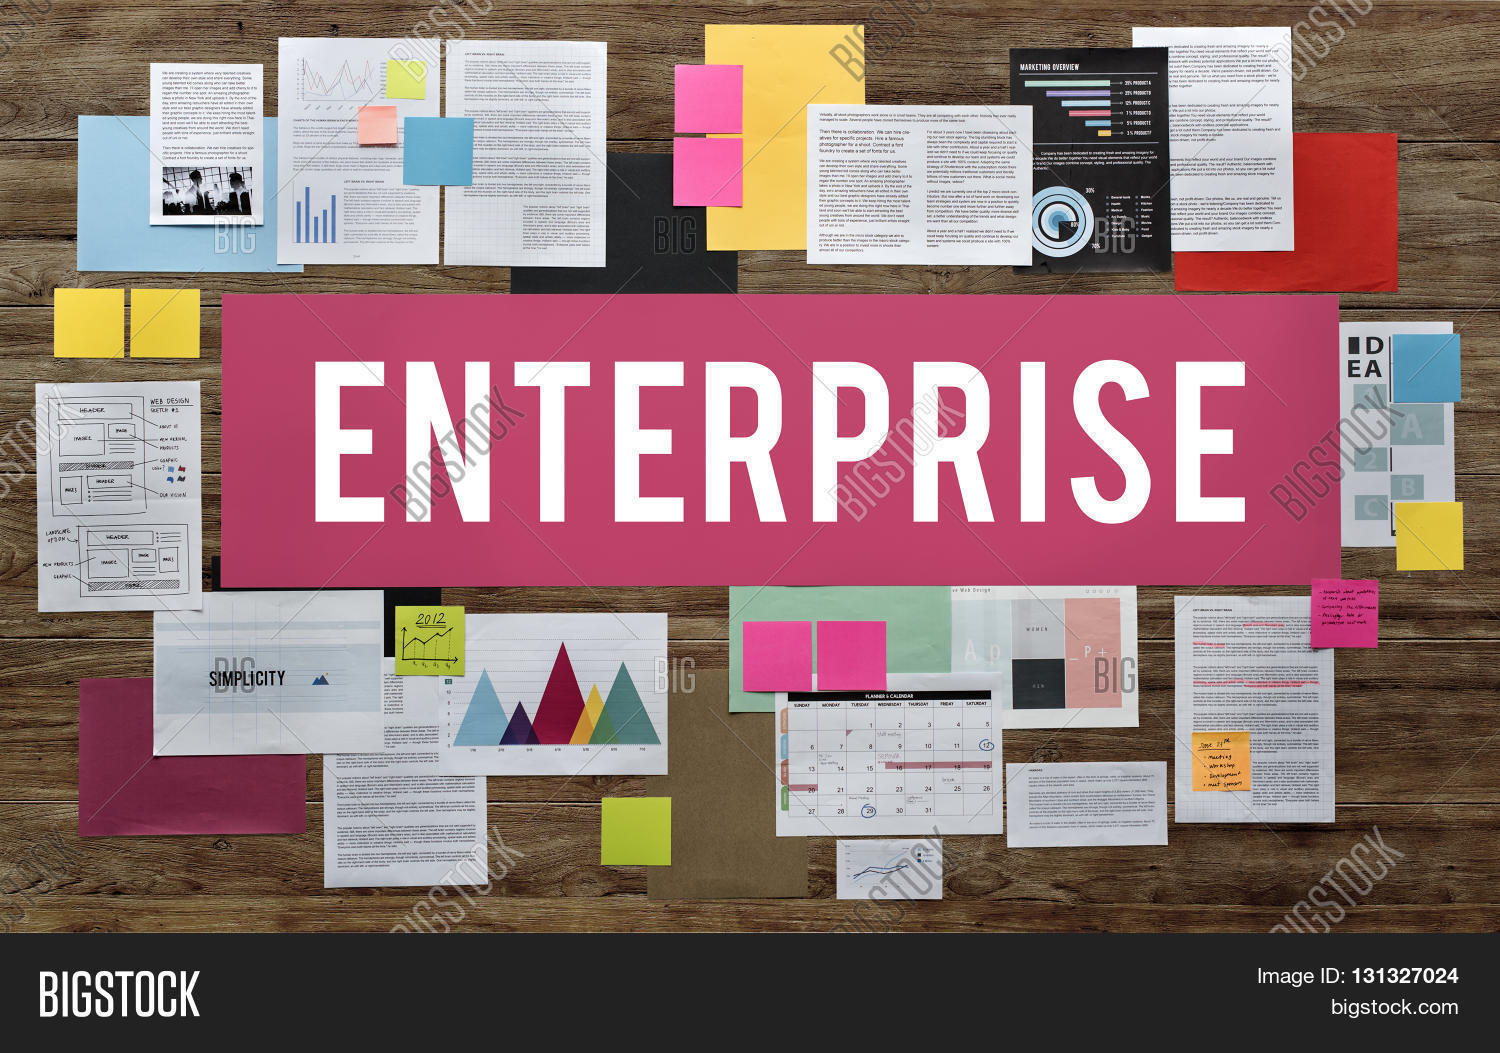 how to become an enterprise company